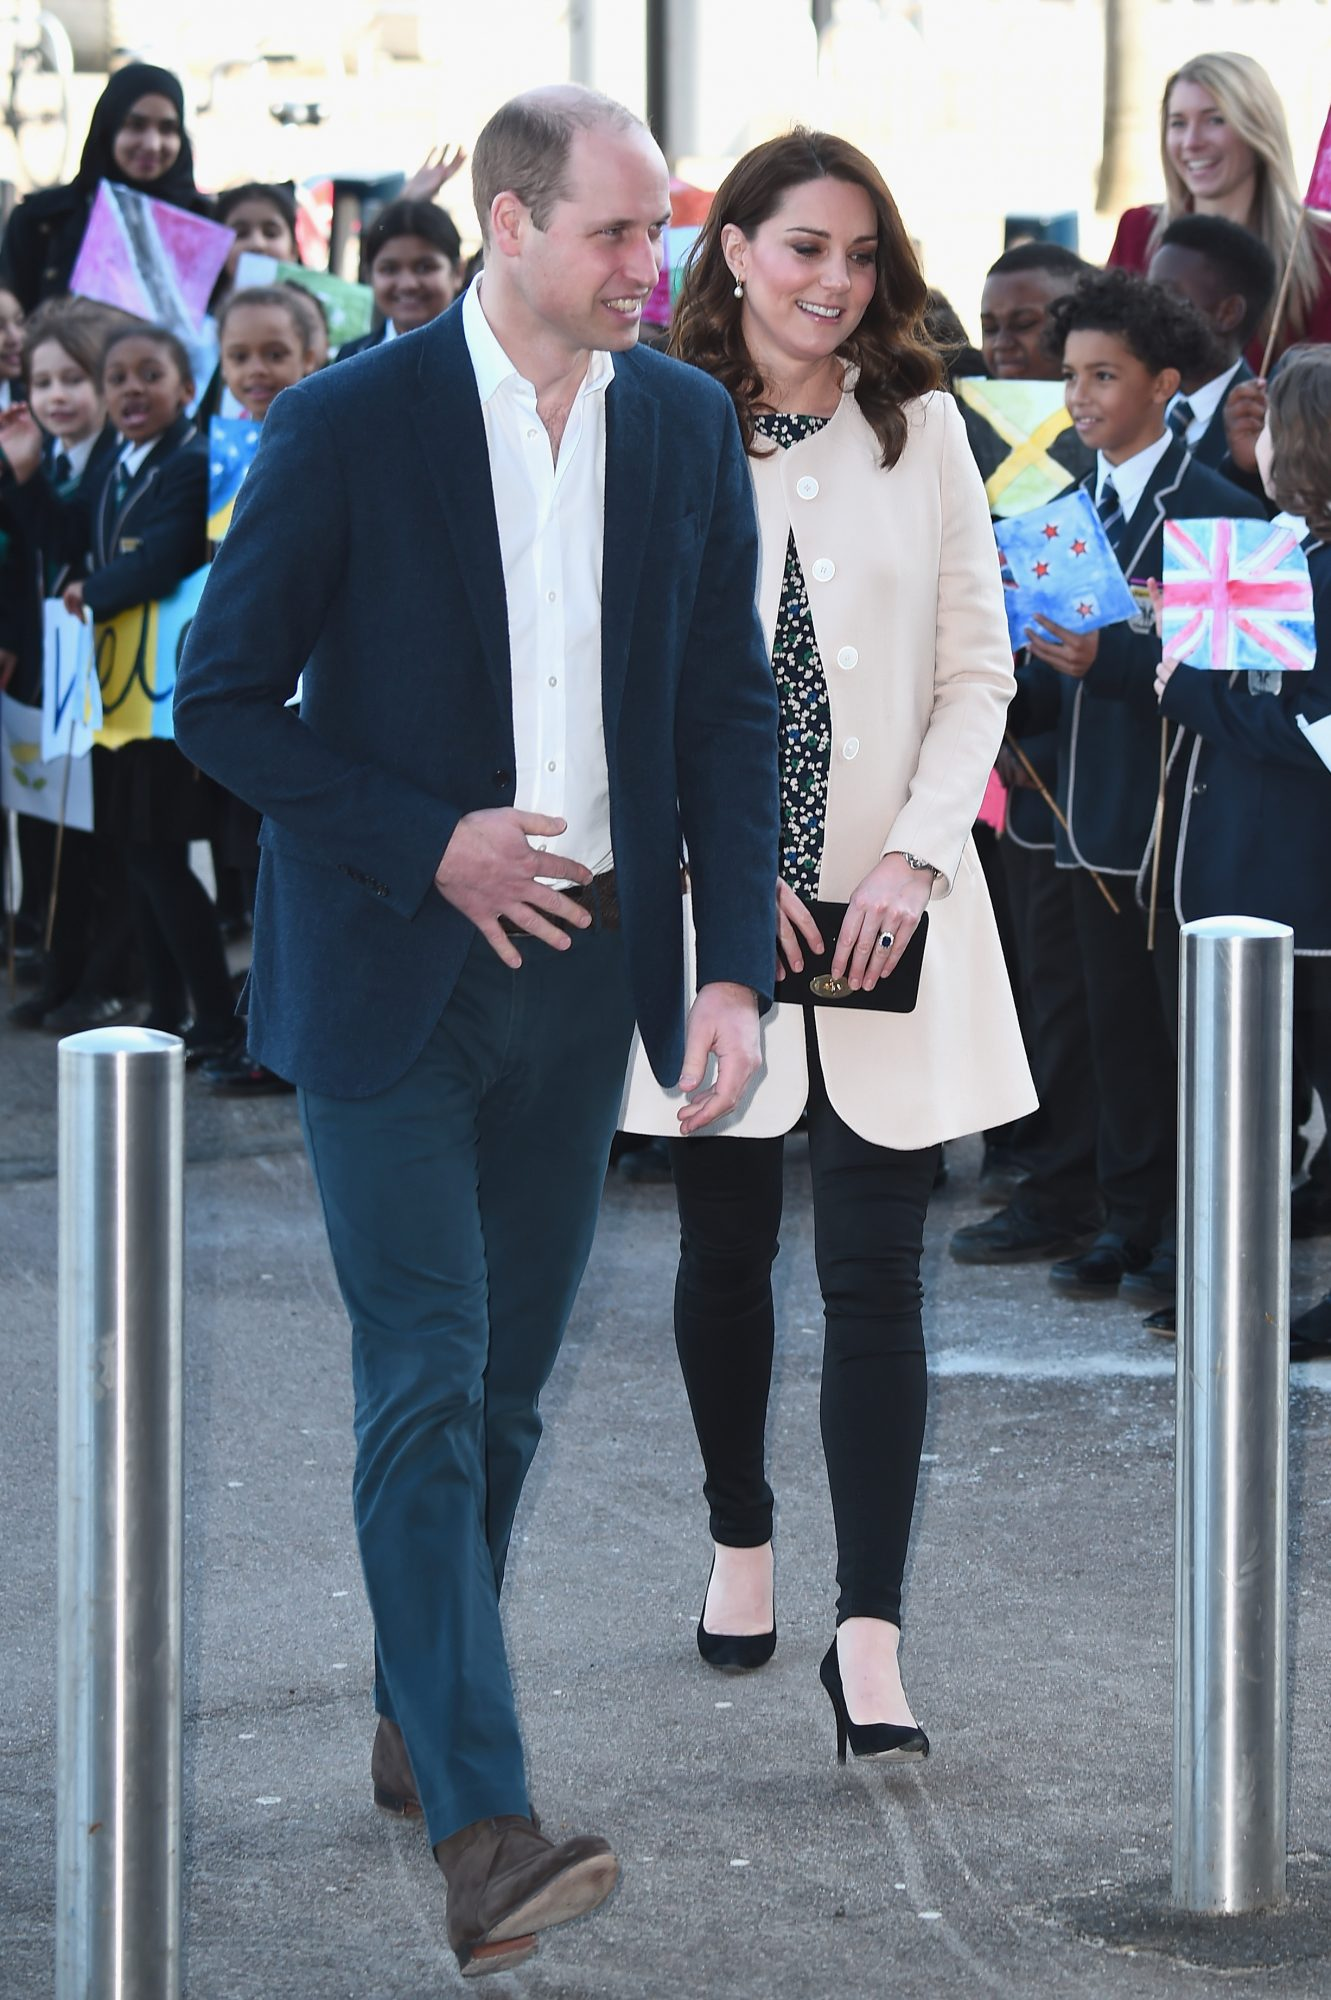 will-kate-last-appearance-third-baby.jpg